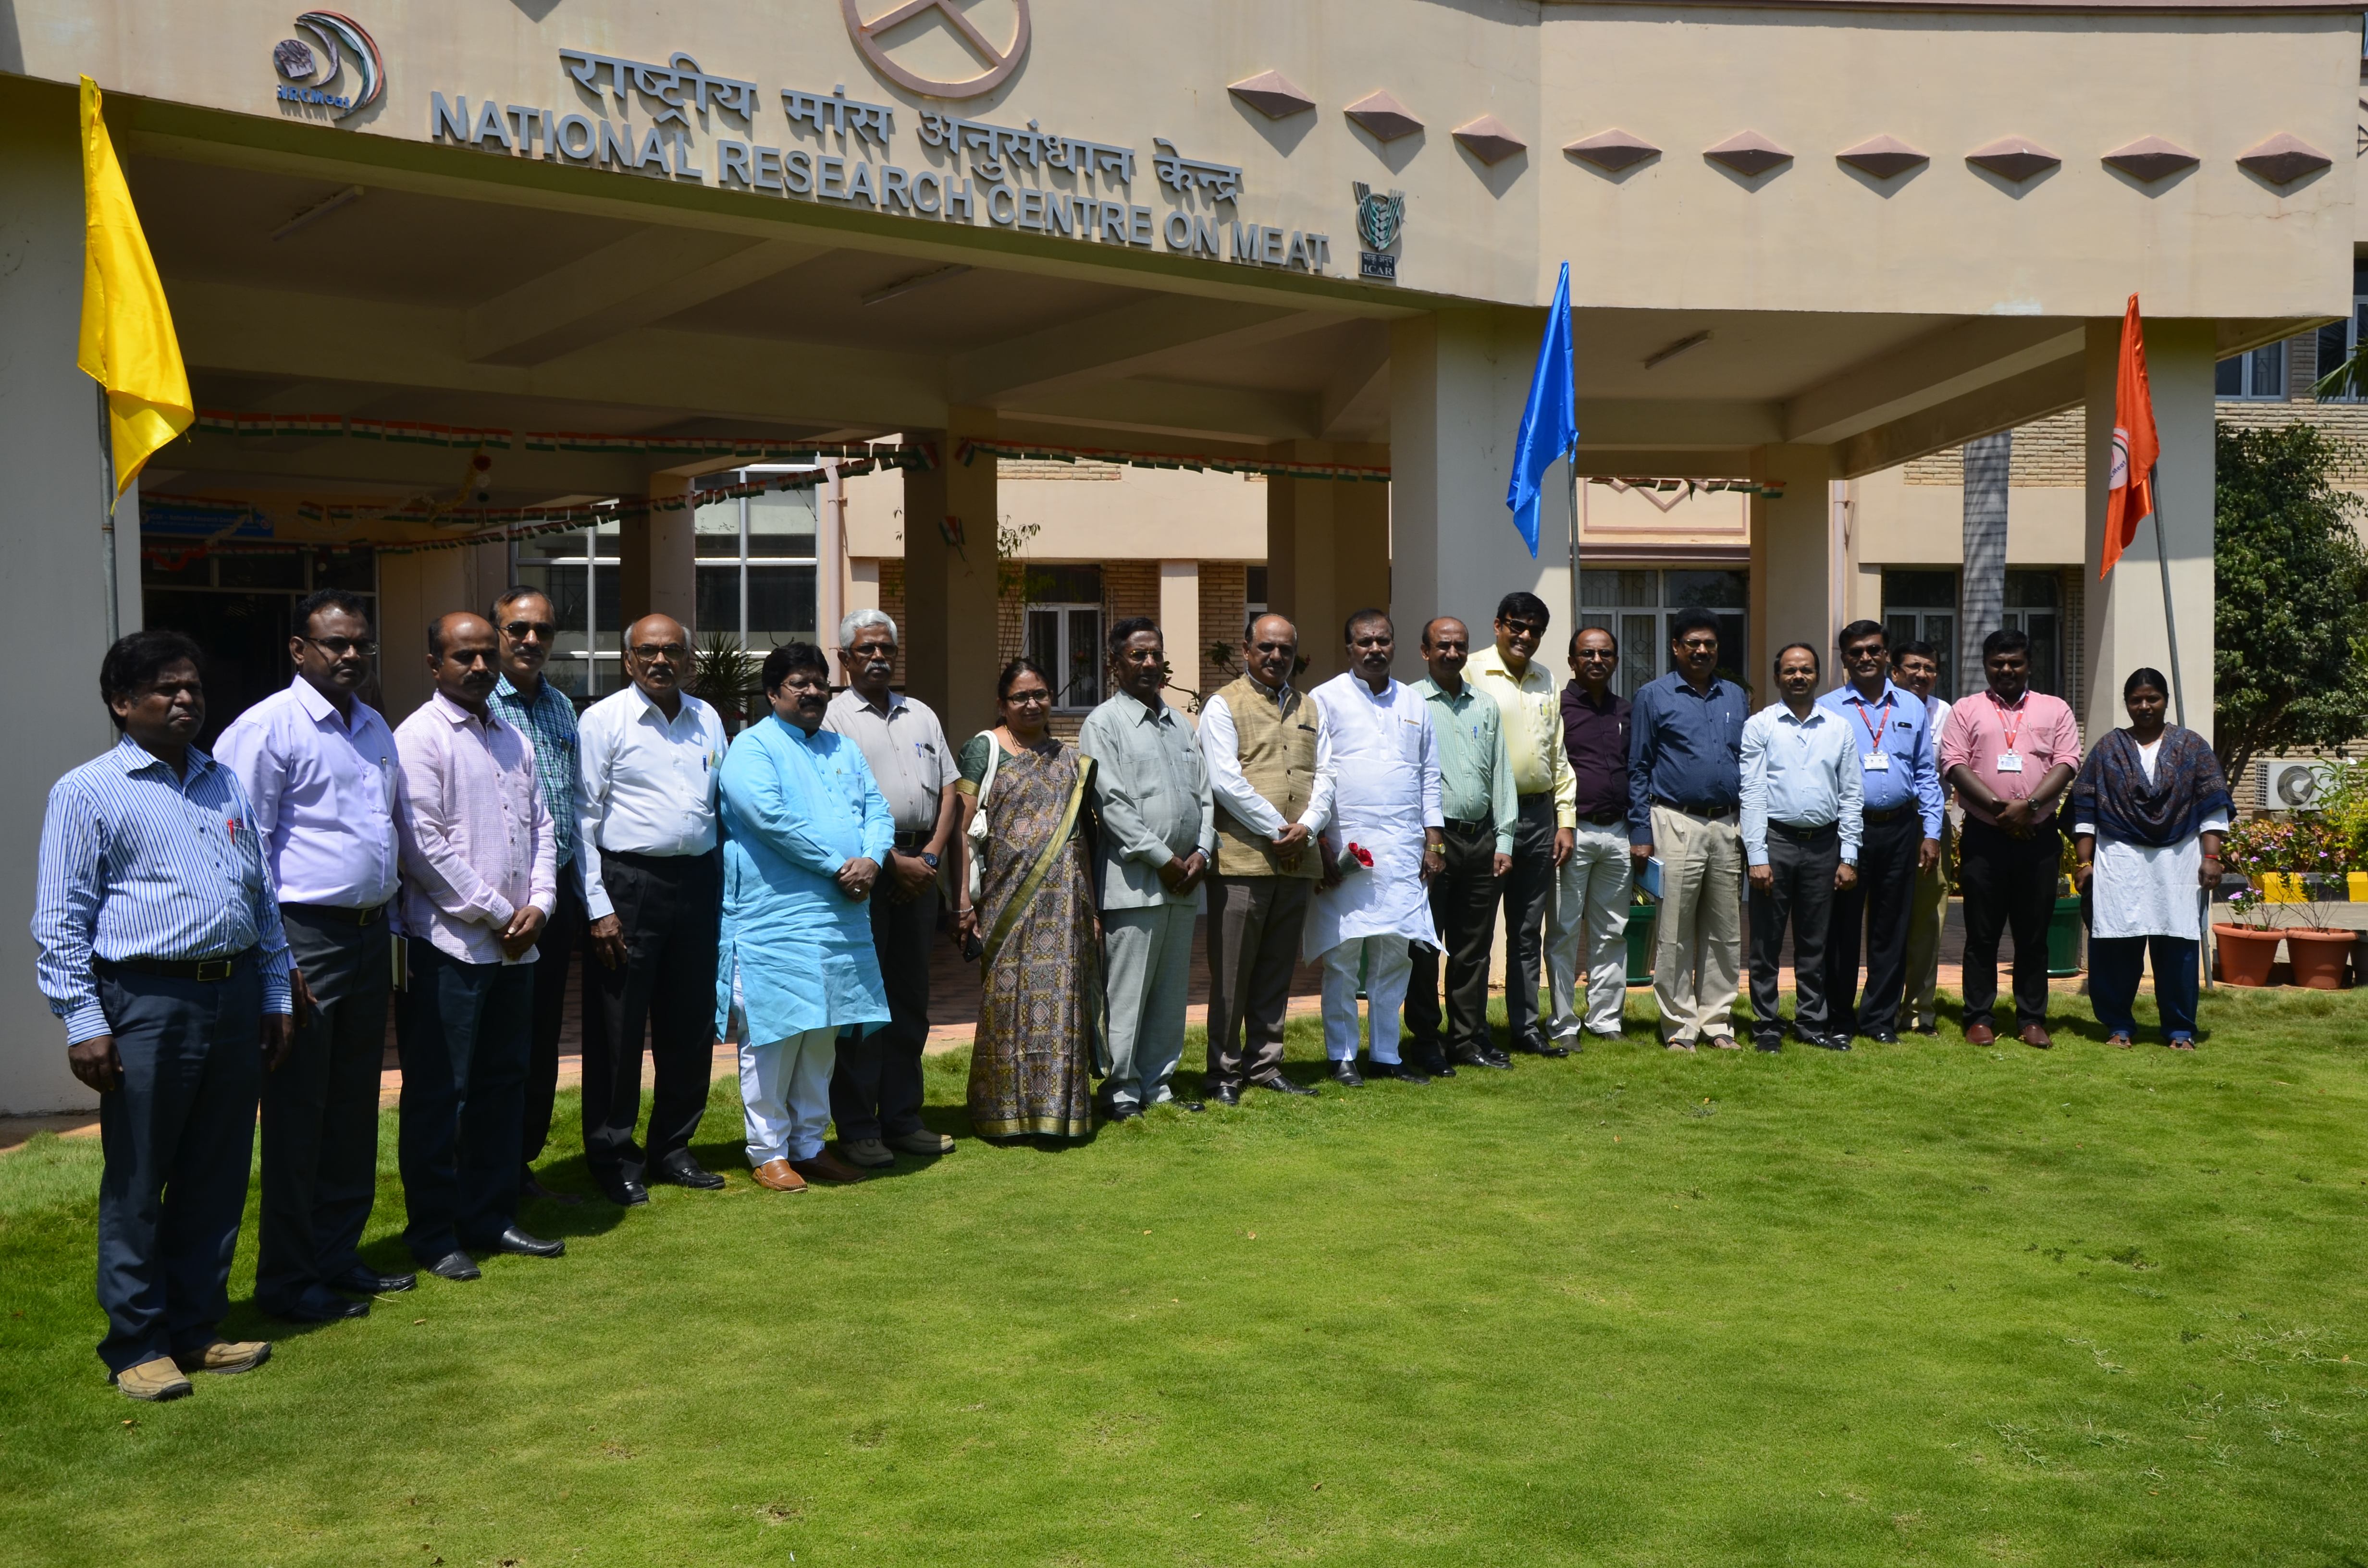 NRCM - National Meat Research Centre on Meat- ICAR Meat Research